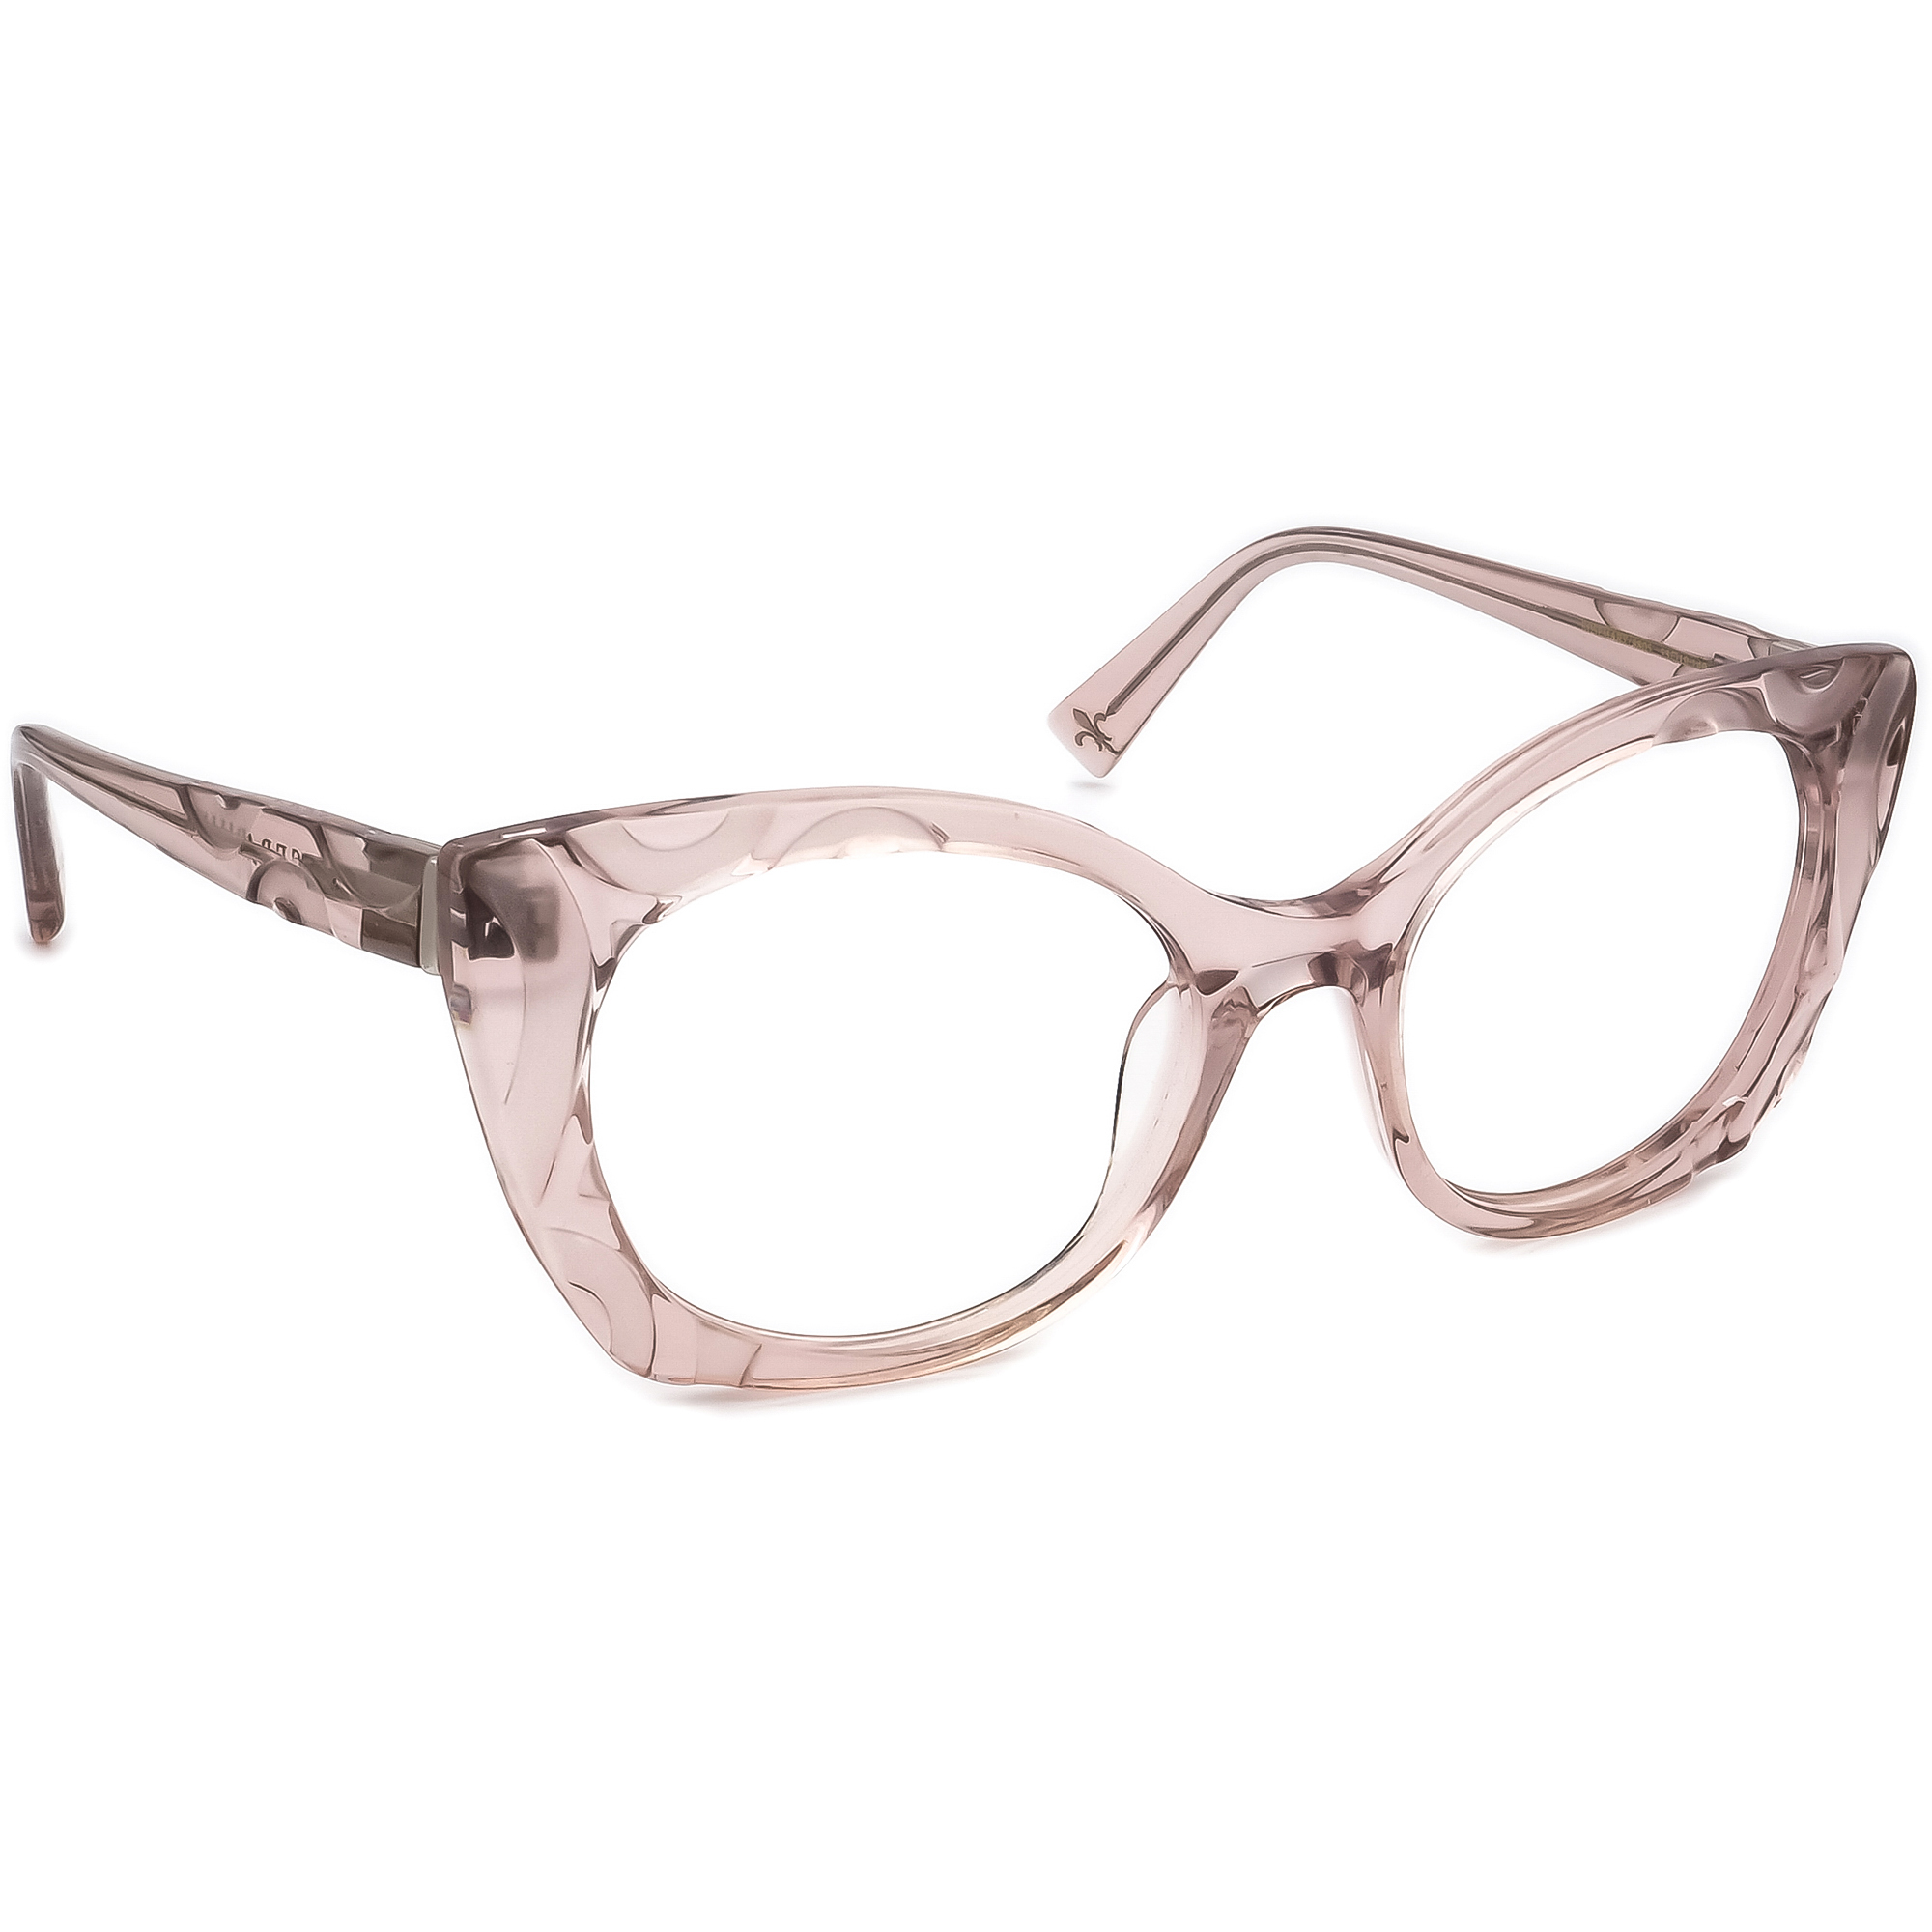 Seraphin Rosemary 8805 Sunglasses Frame Only